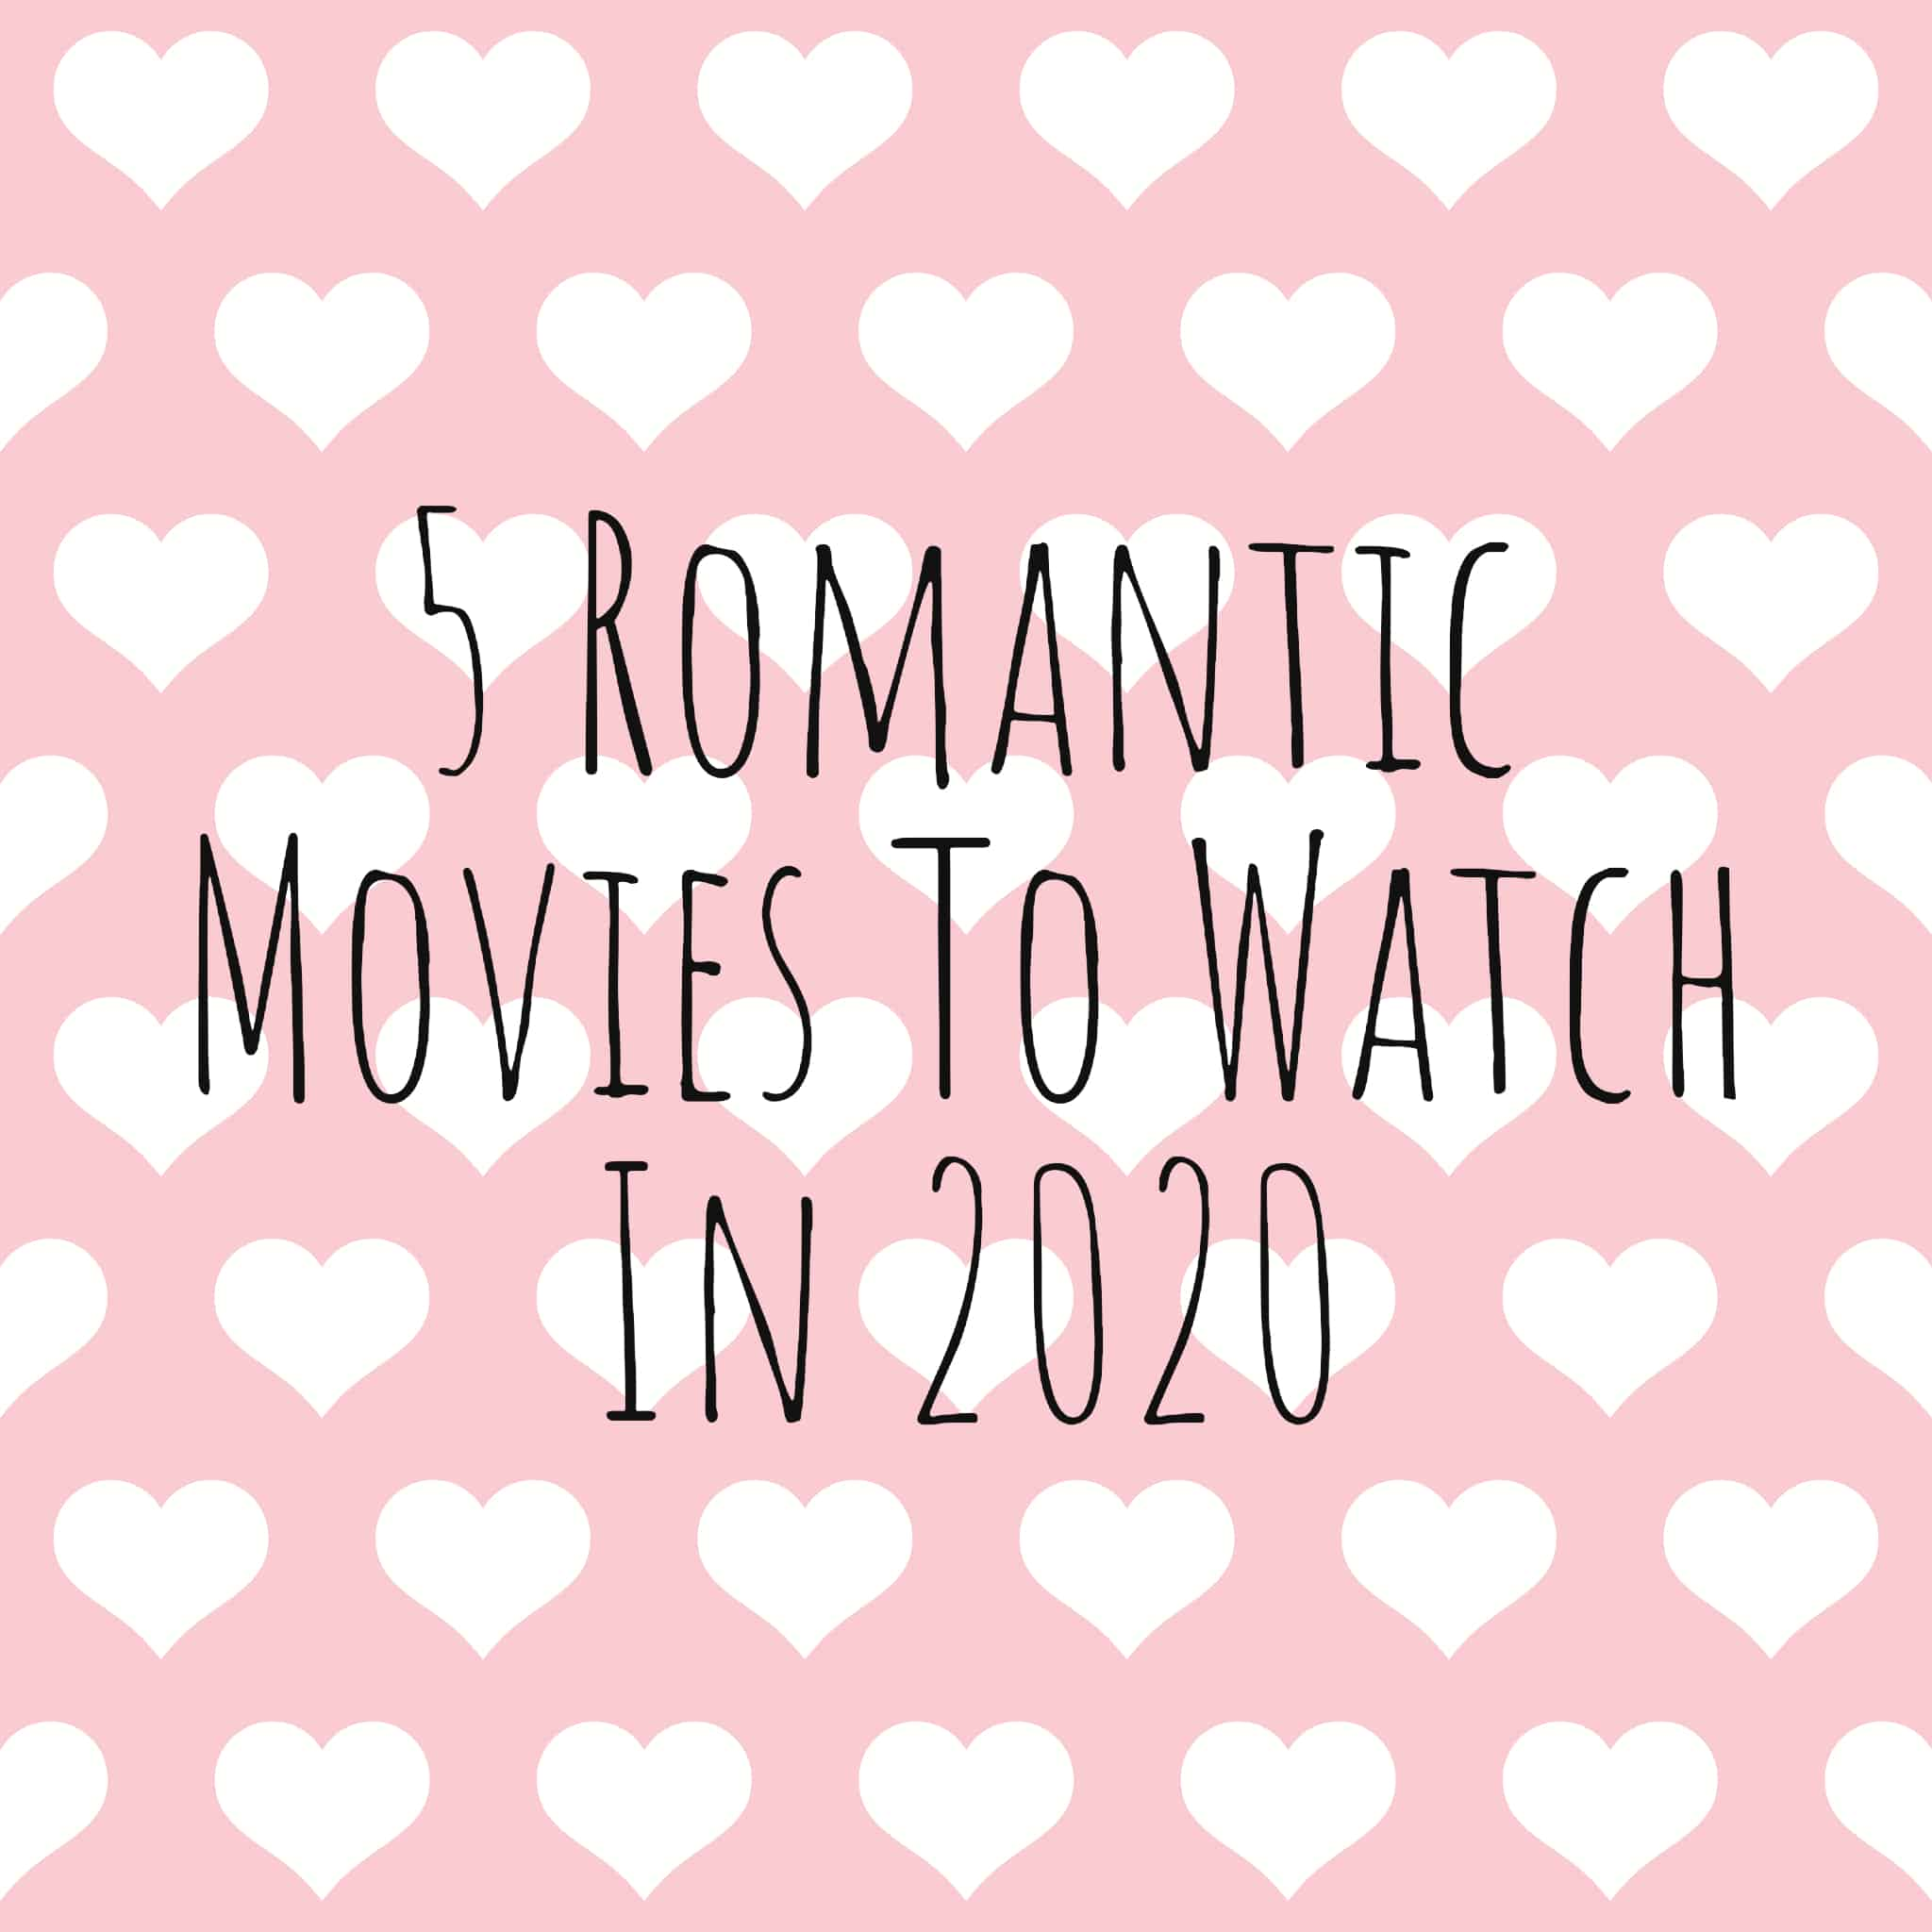 5 Romantic Movies To Watch in 2020